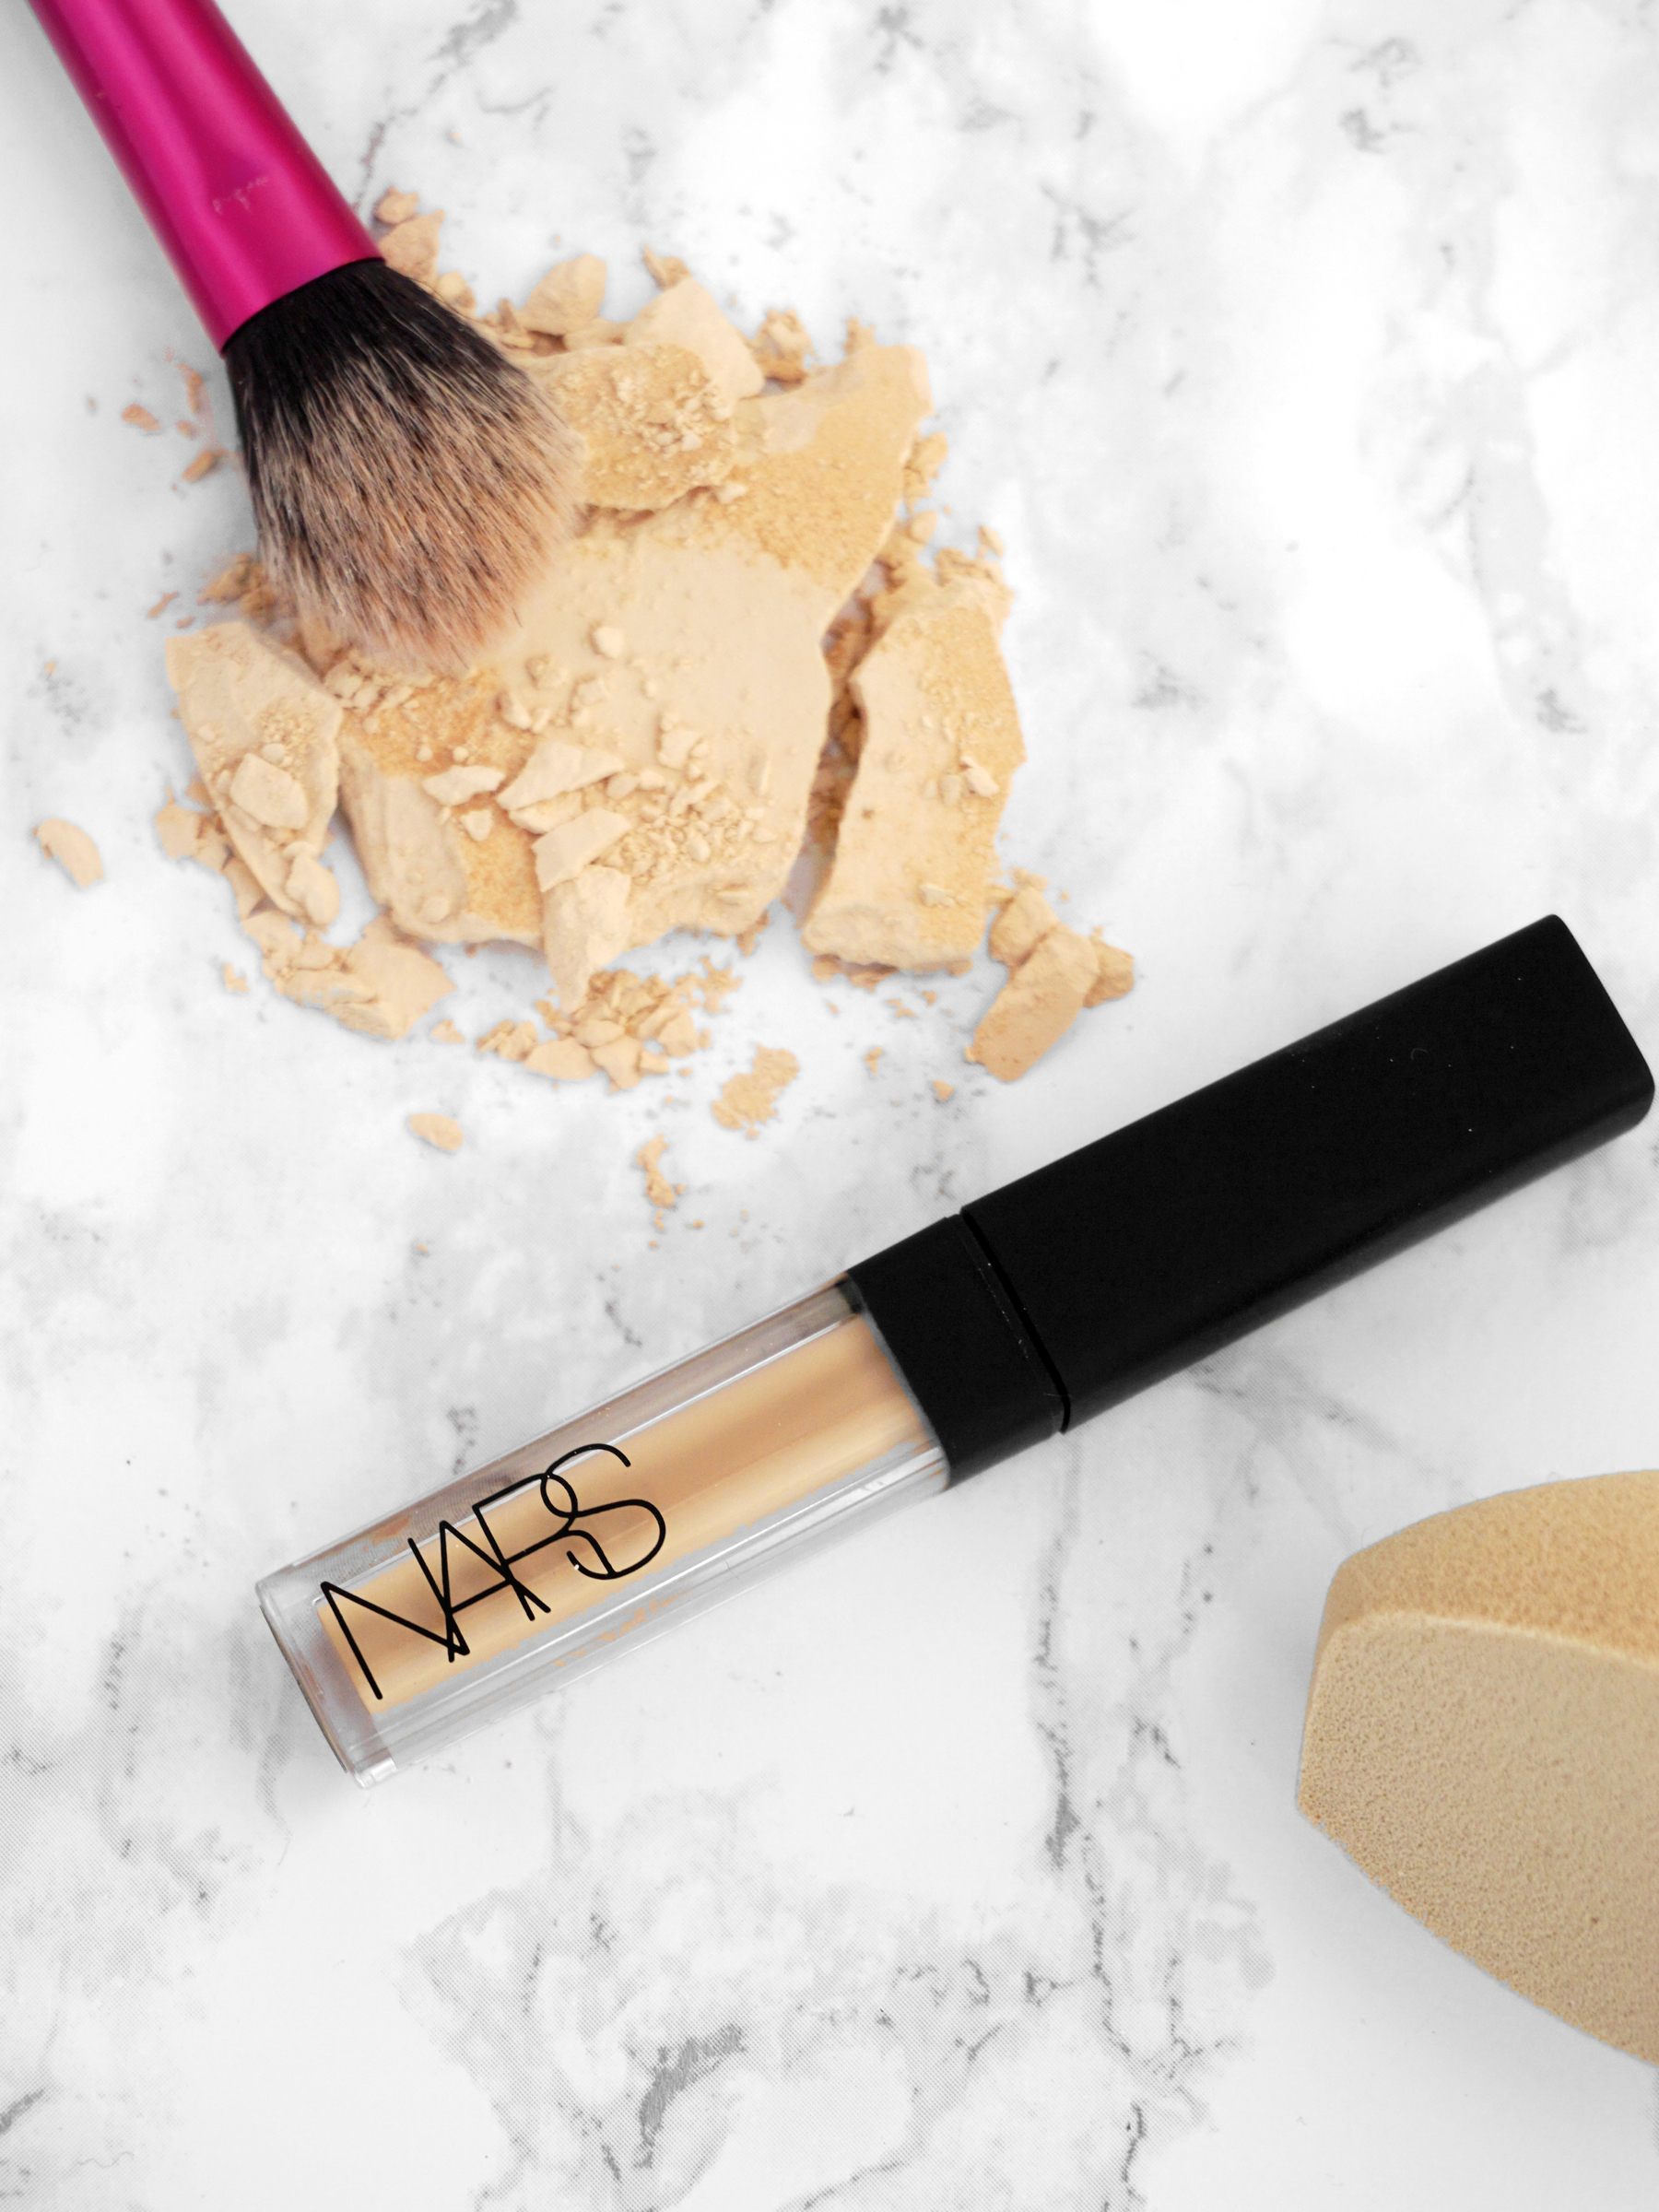 affordable beauty - 20 under $20223.jpg